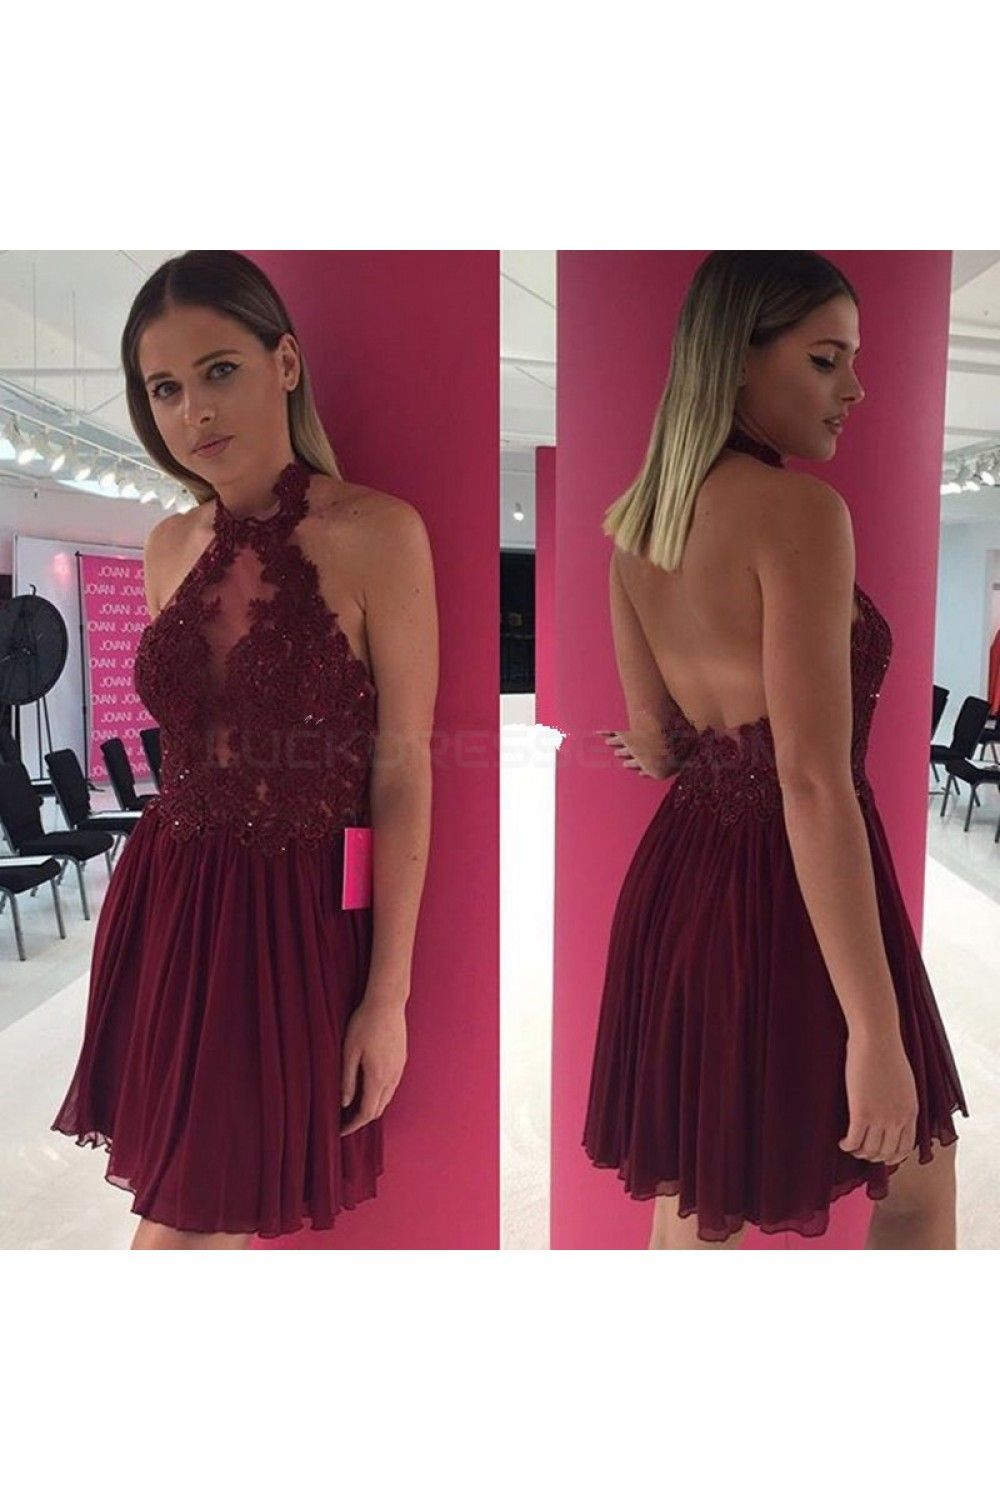 Aline halter lace chiffon short prom homecoming cocktail graduation